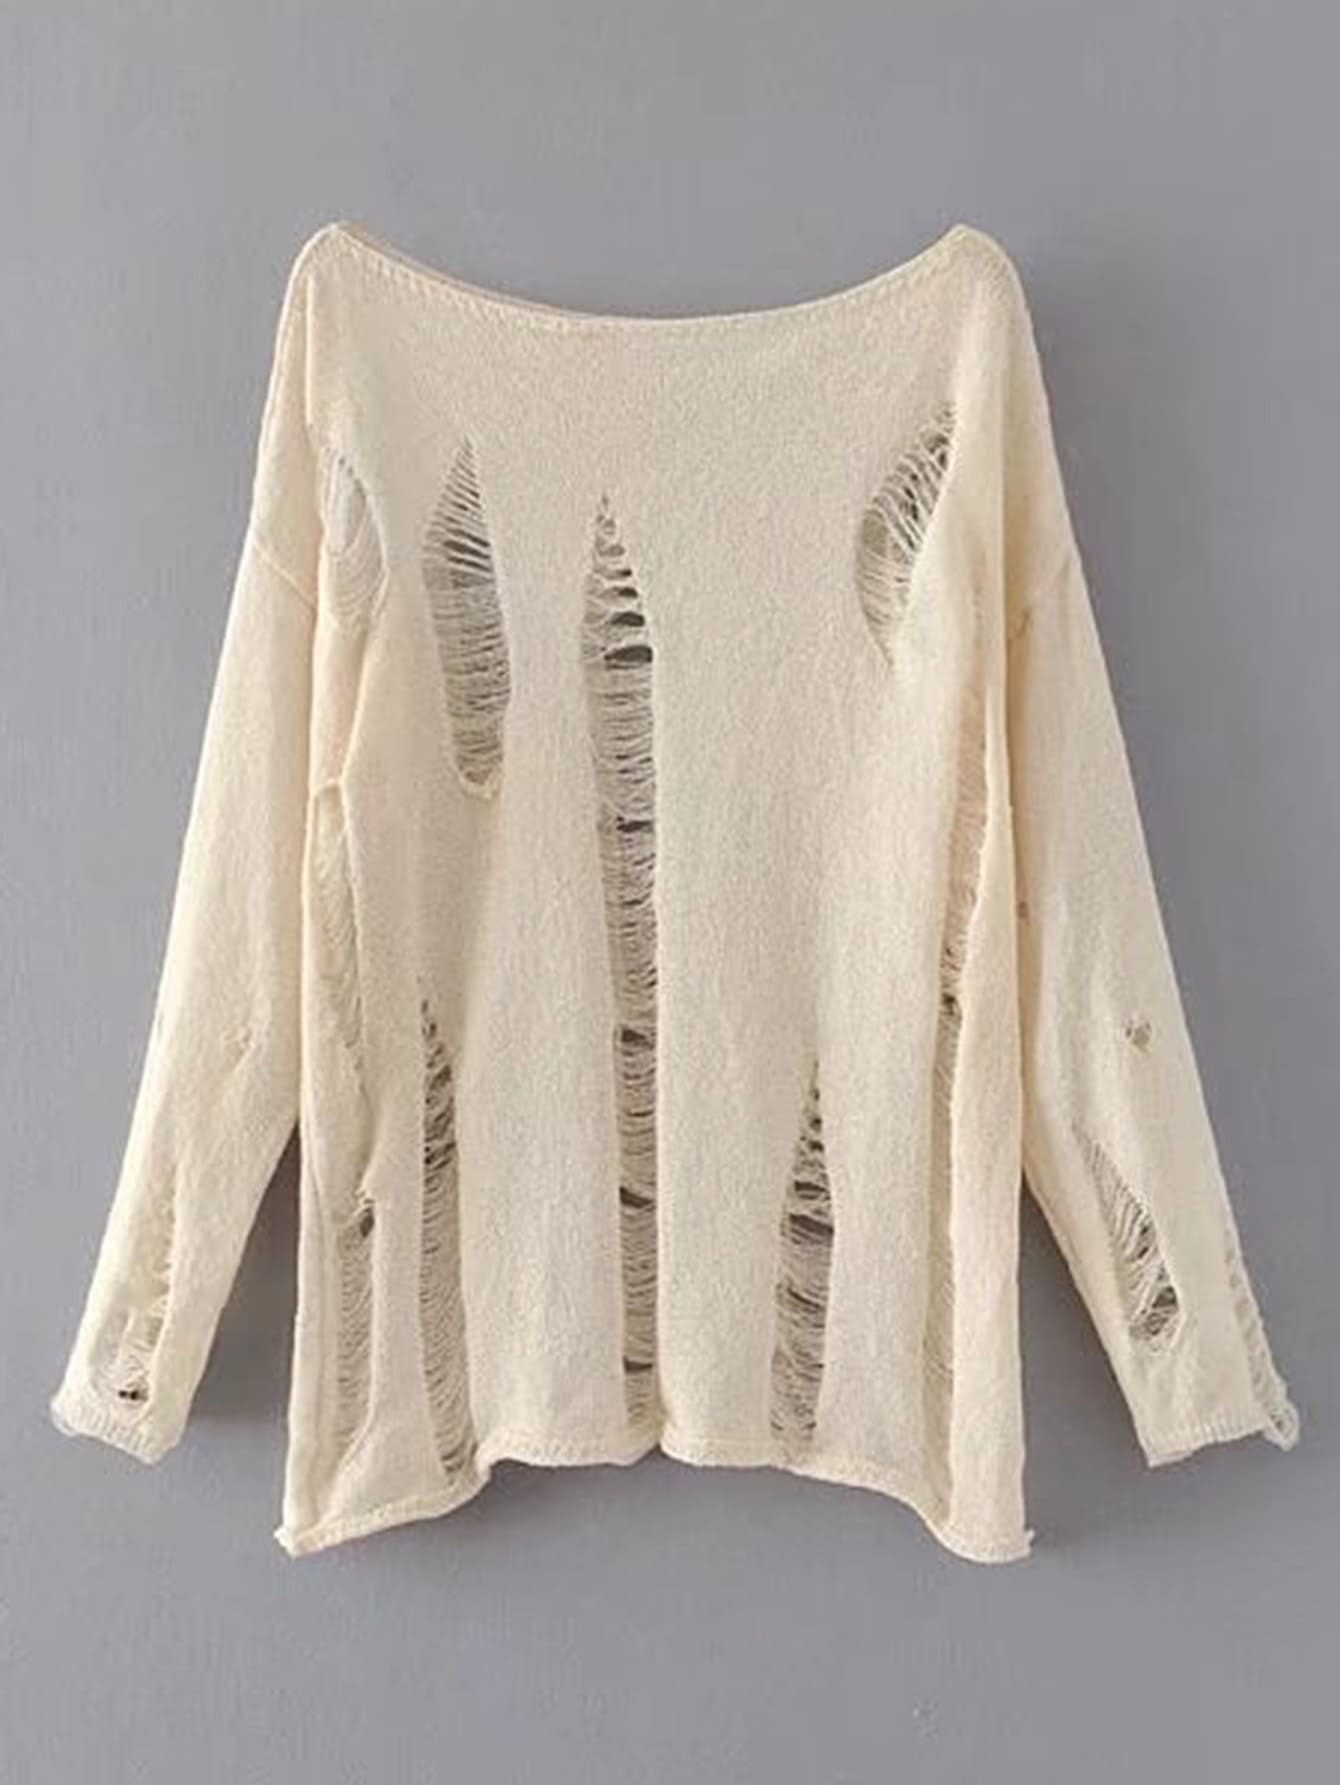 Boat Neckline Distressed Knitwear sweater170724205